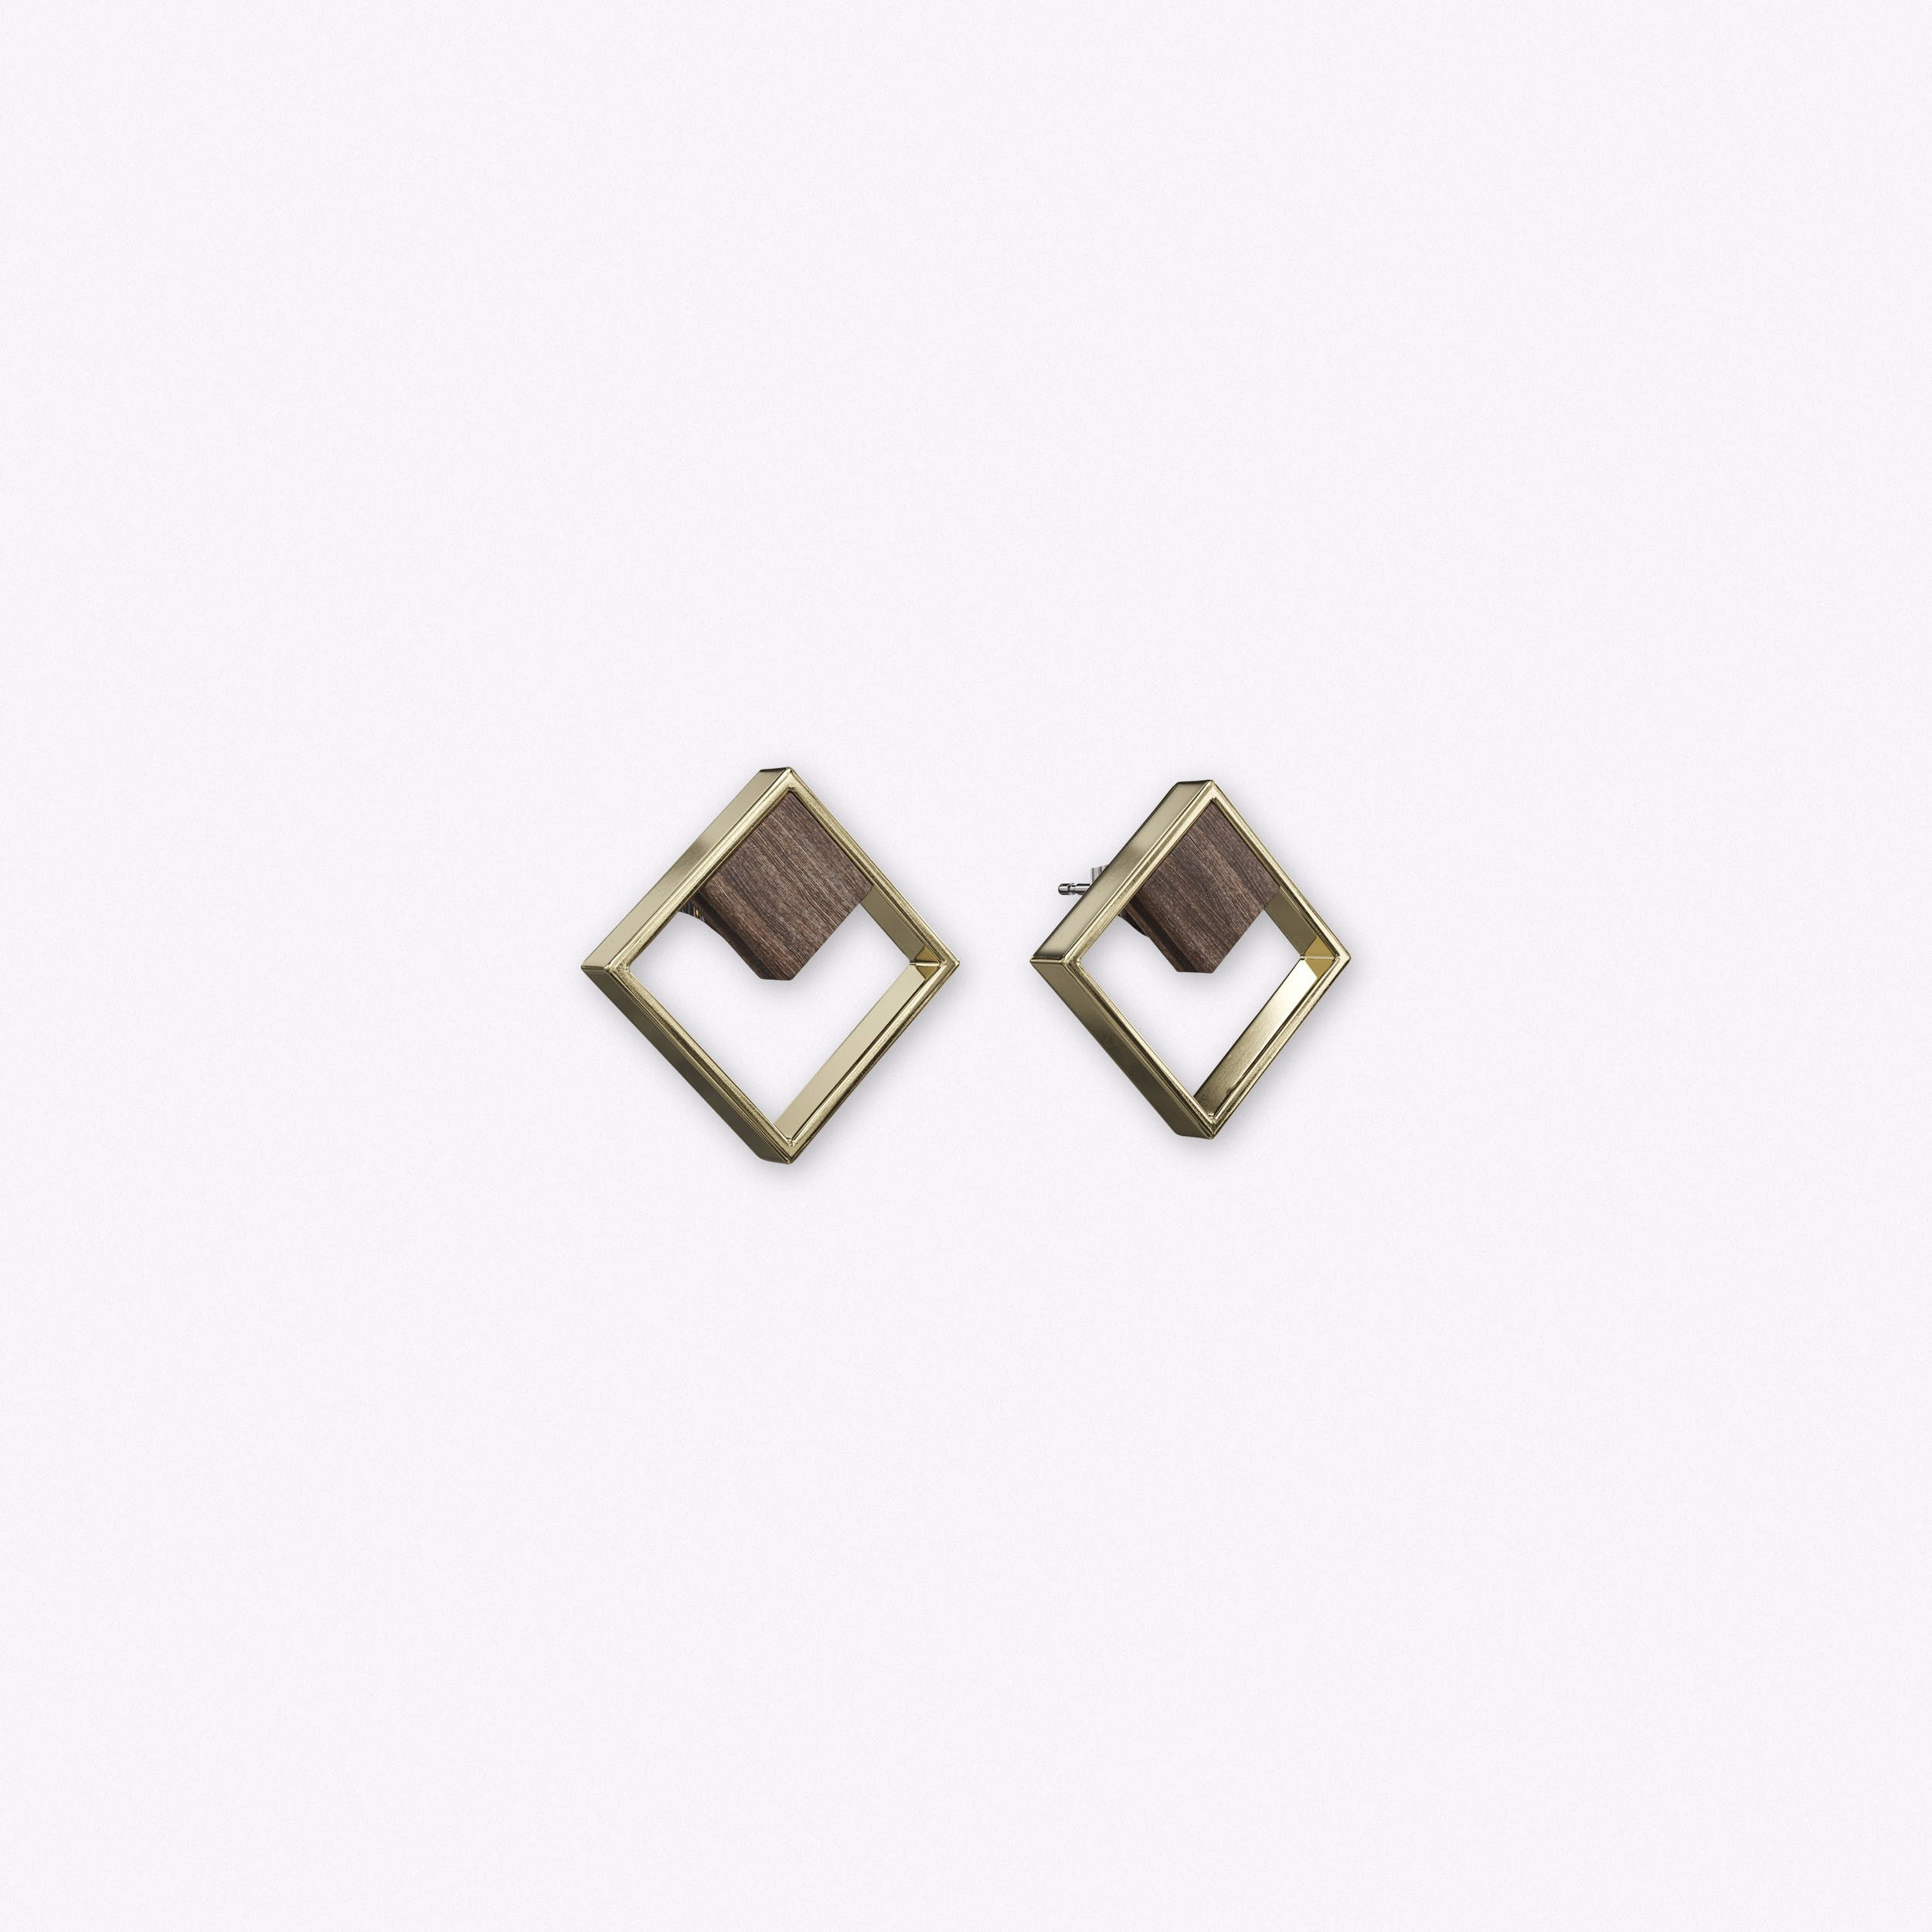 Indikativ Earrings in Wood & Gold